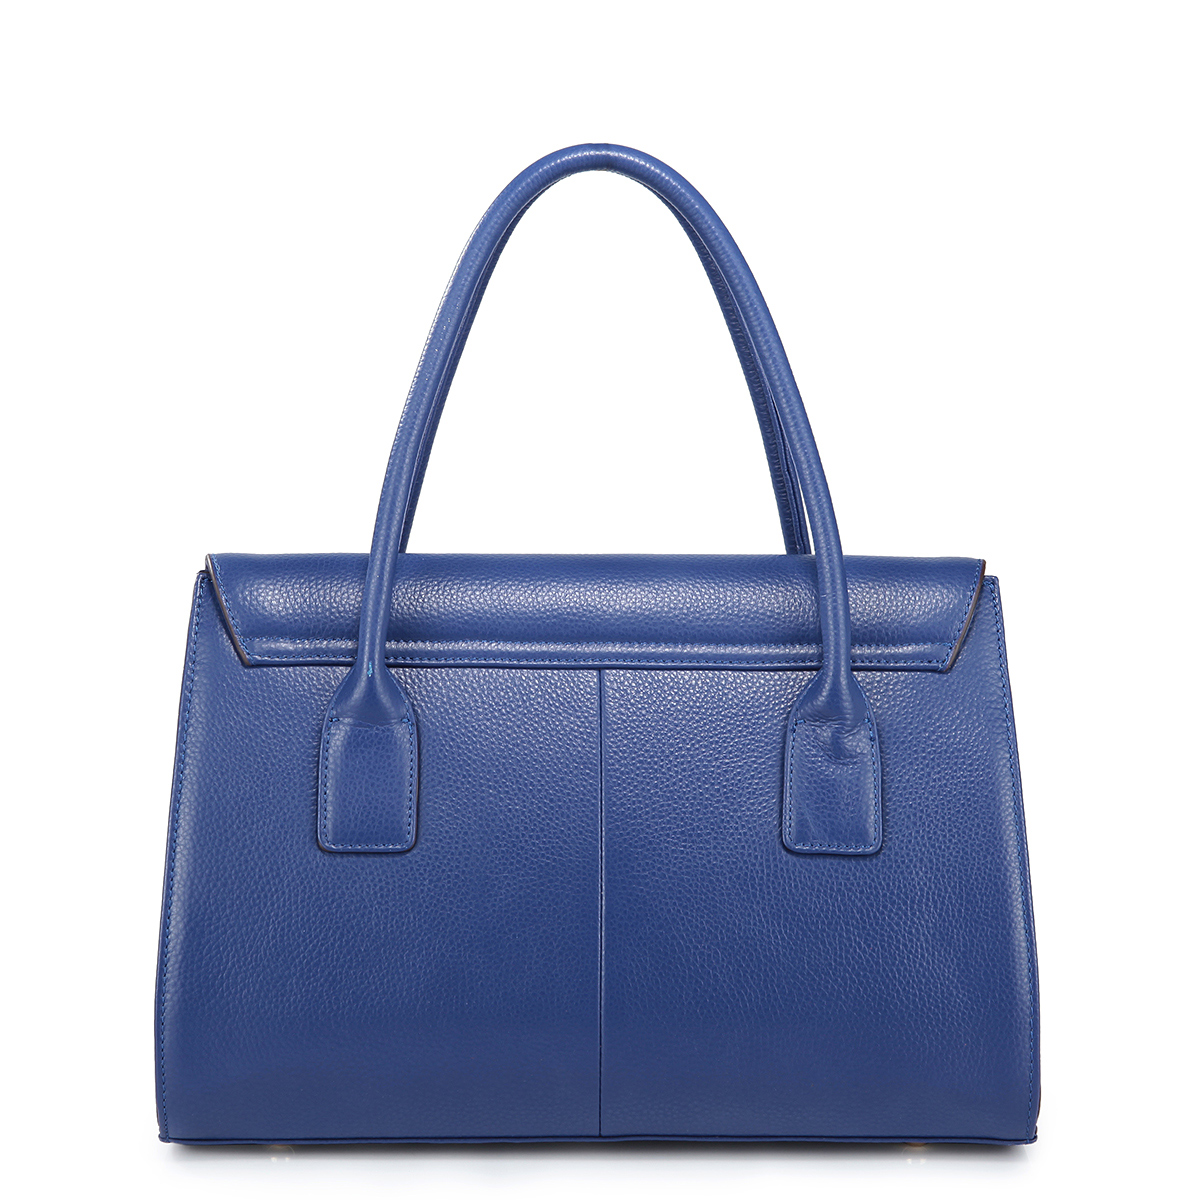 ... Position: Home  Women's Bags  Tote Bags  Real leather tote bag blue